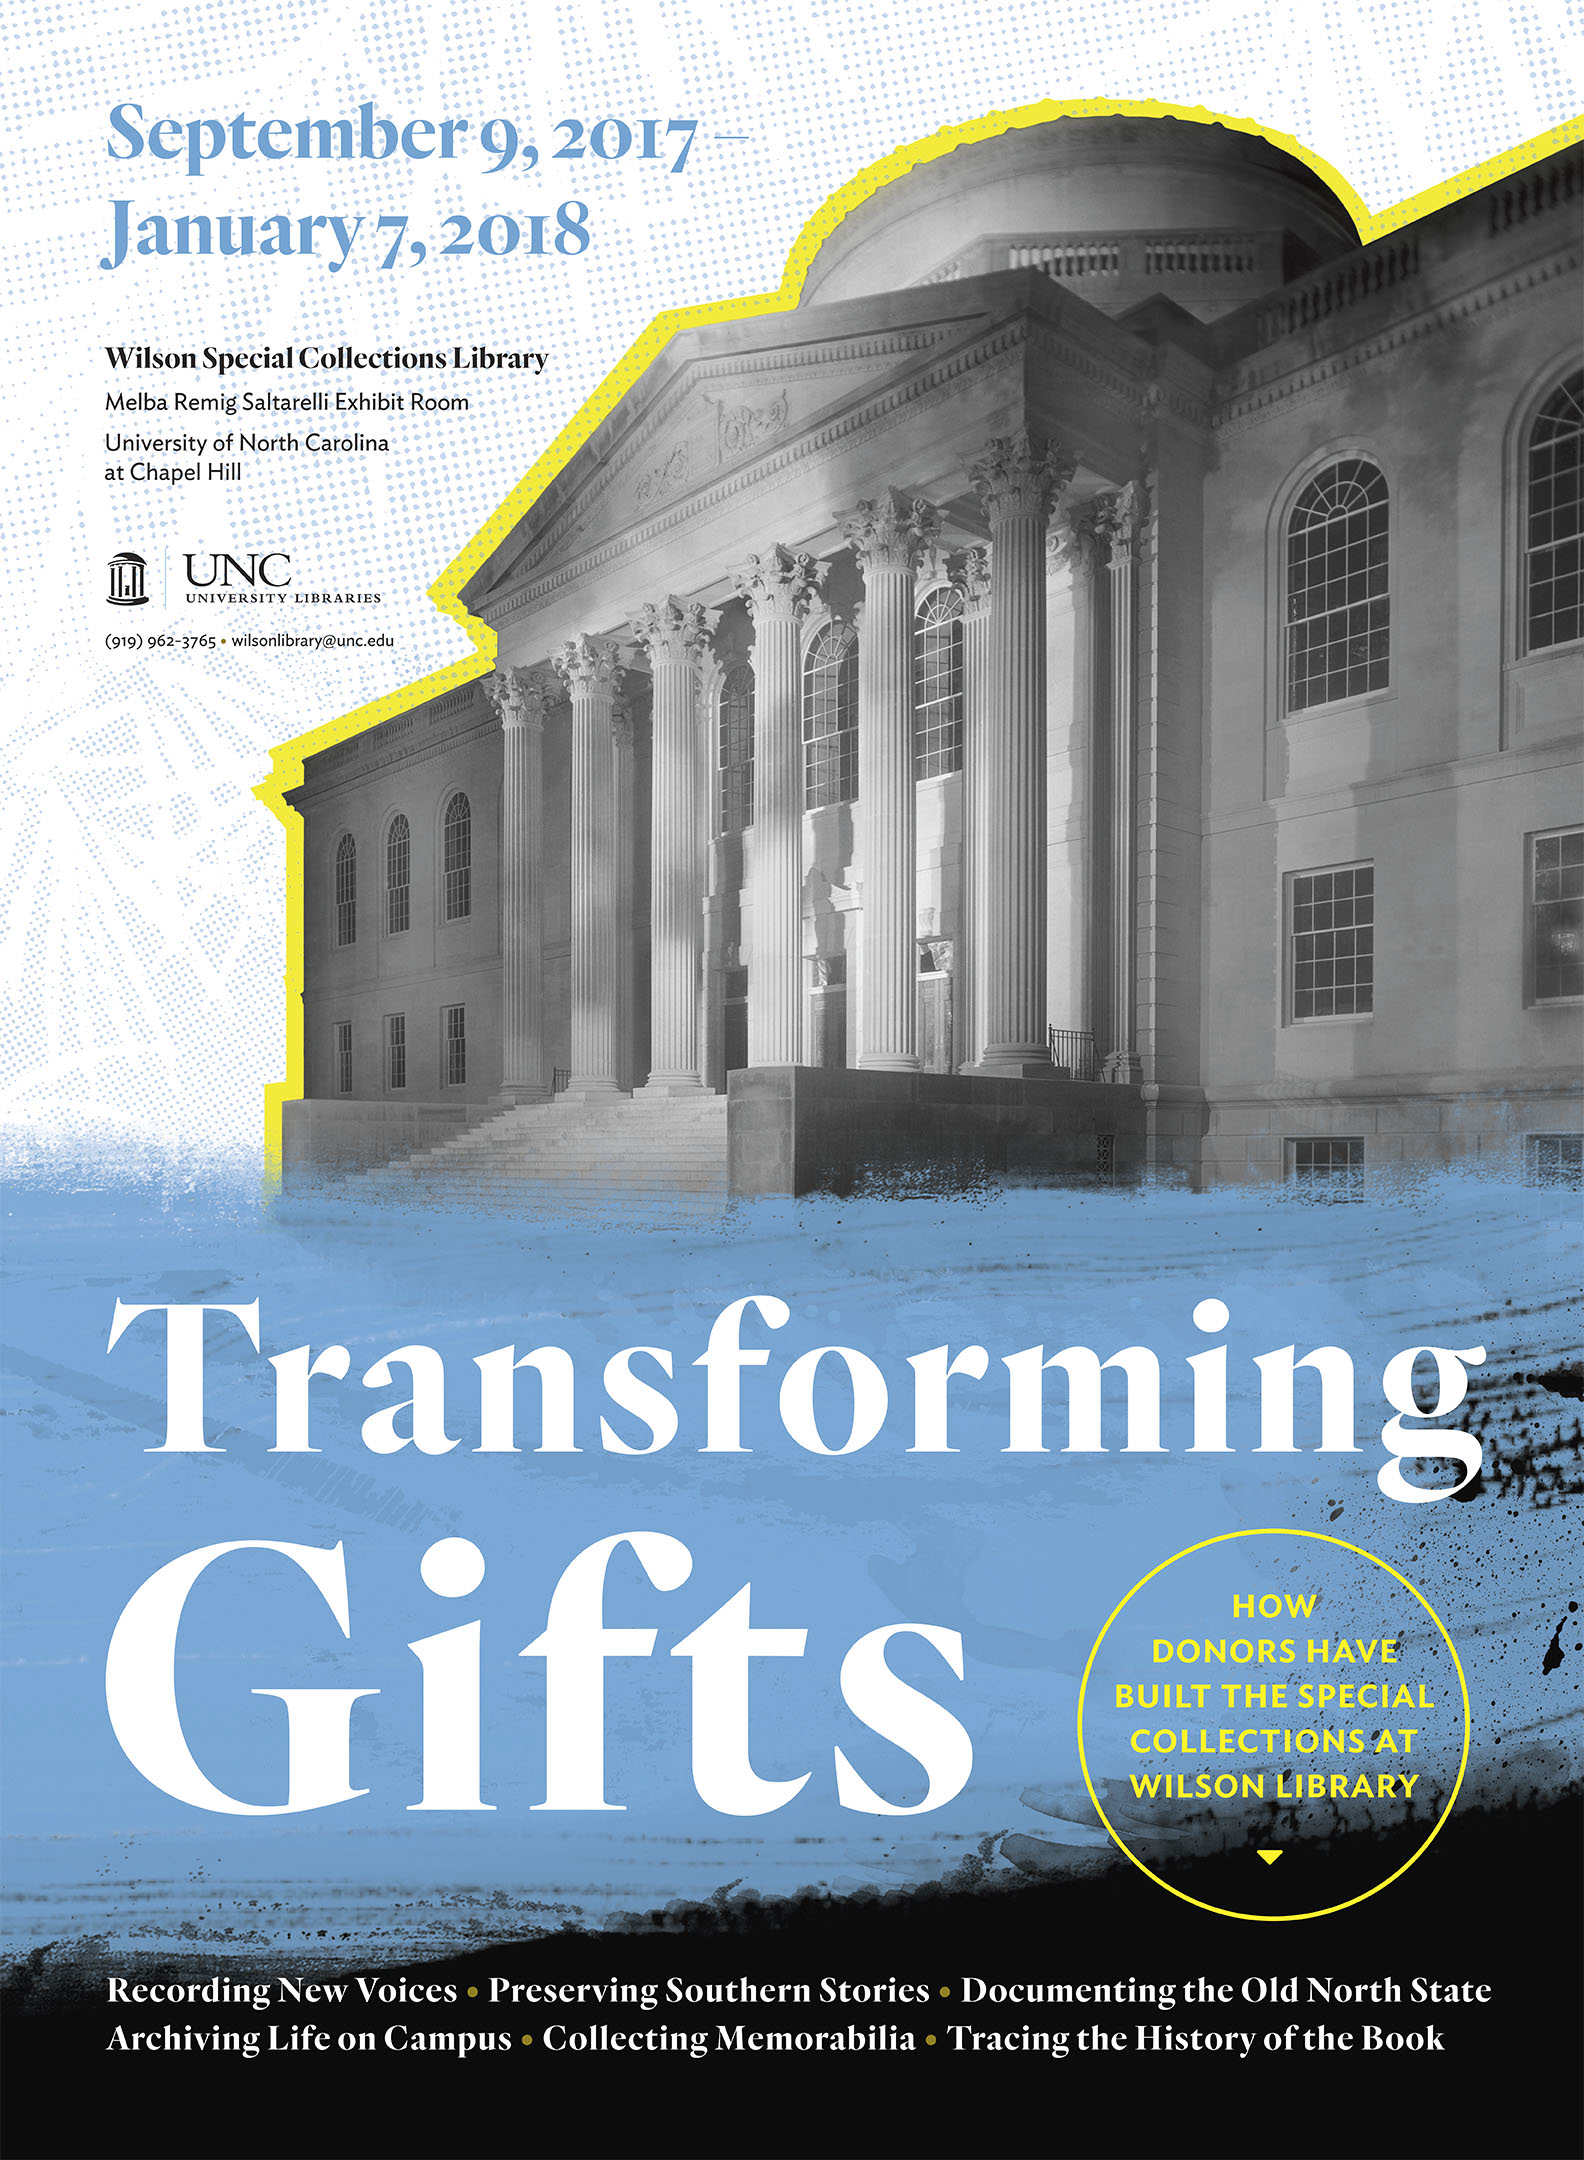 This is an image of the poster that advertised the Transforming Gifts exhibition. It shows an image of the Wilson Library outlined in yellow.